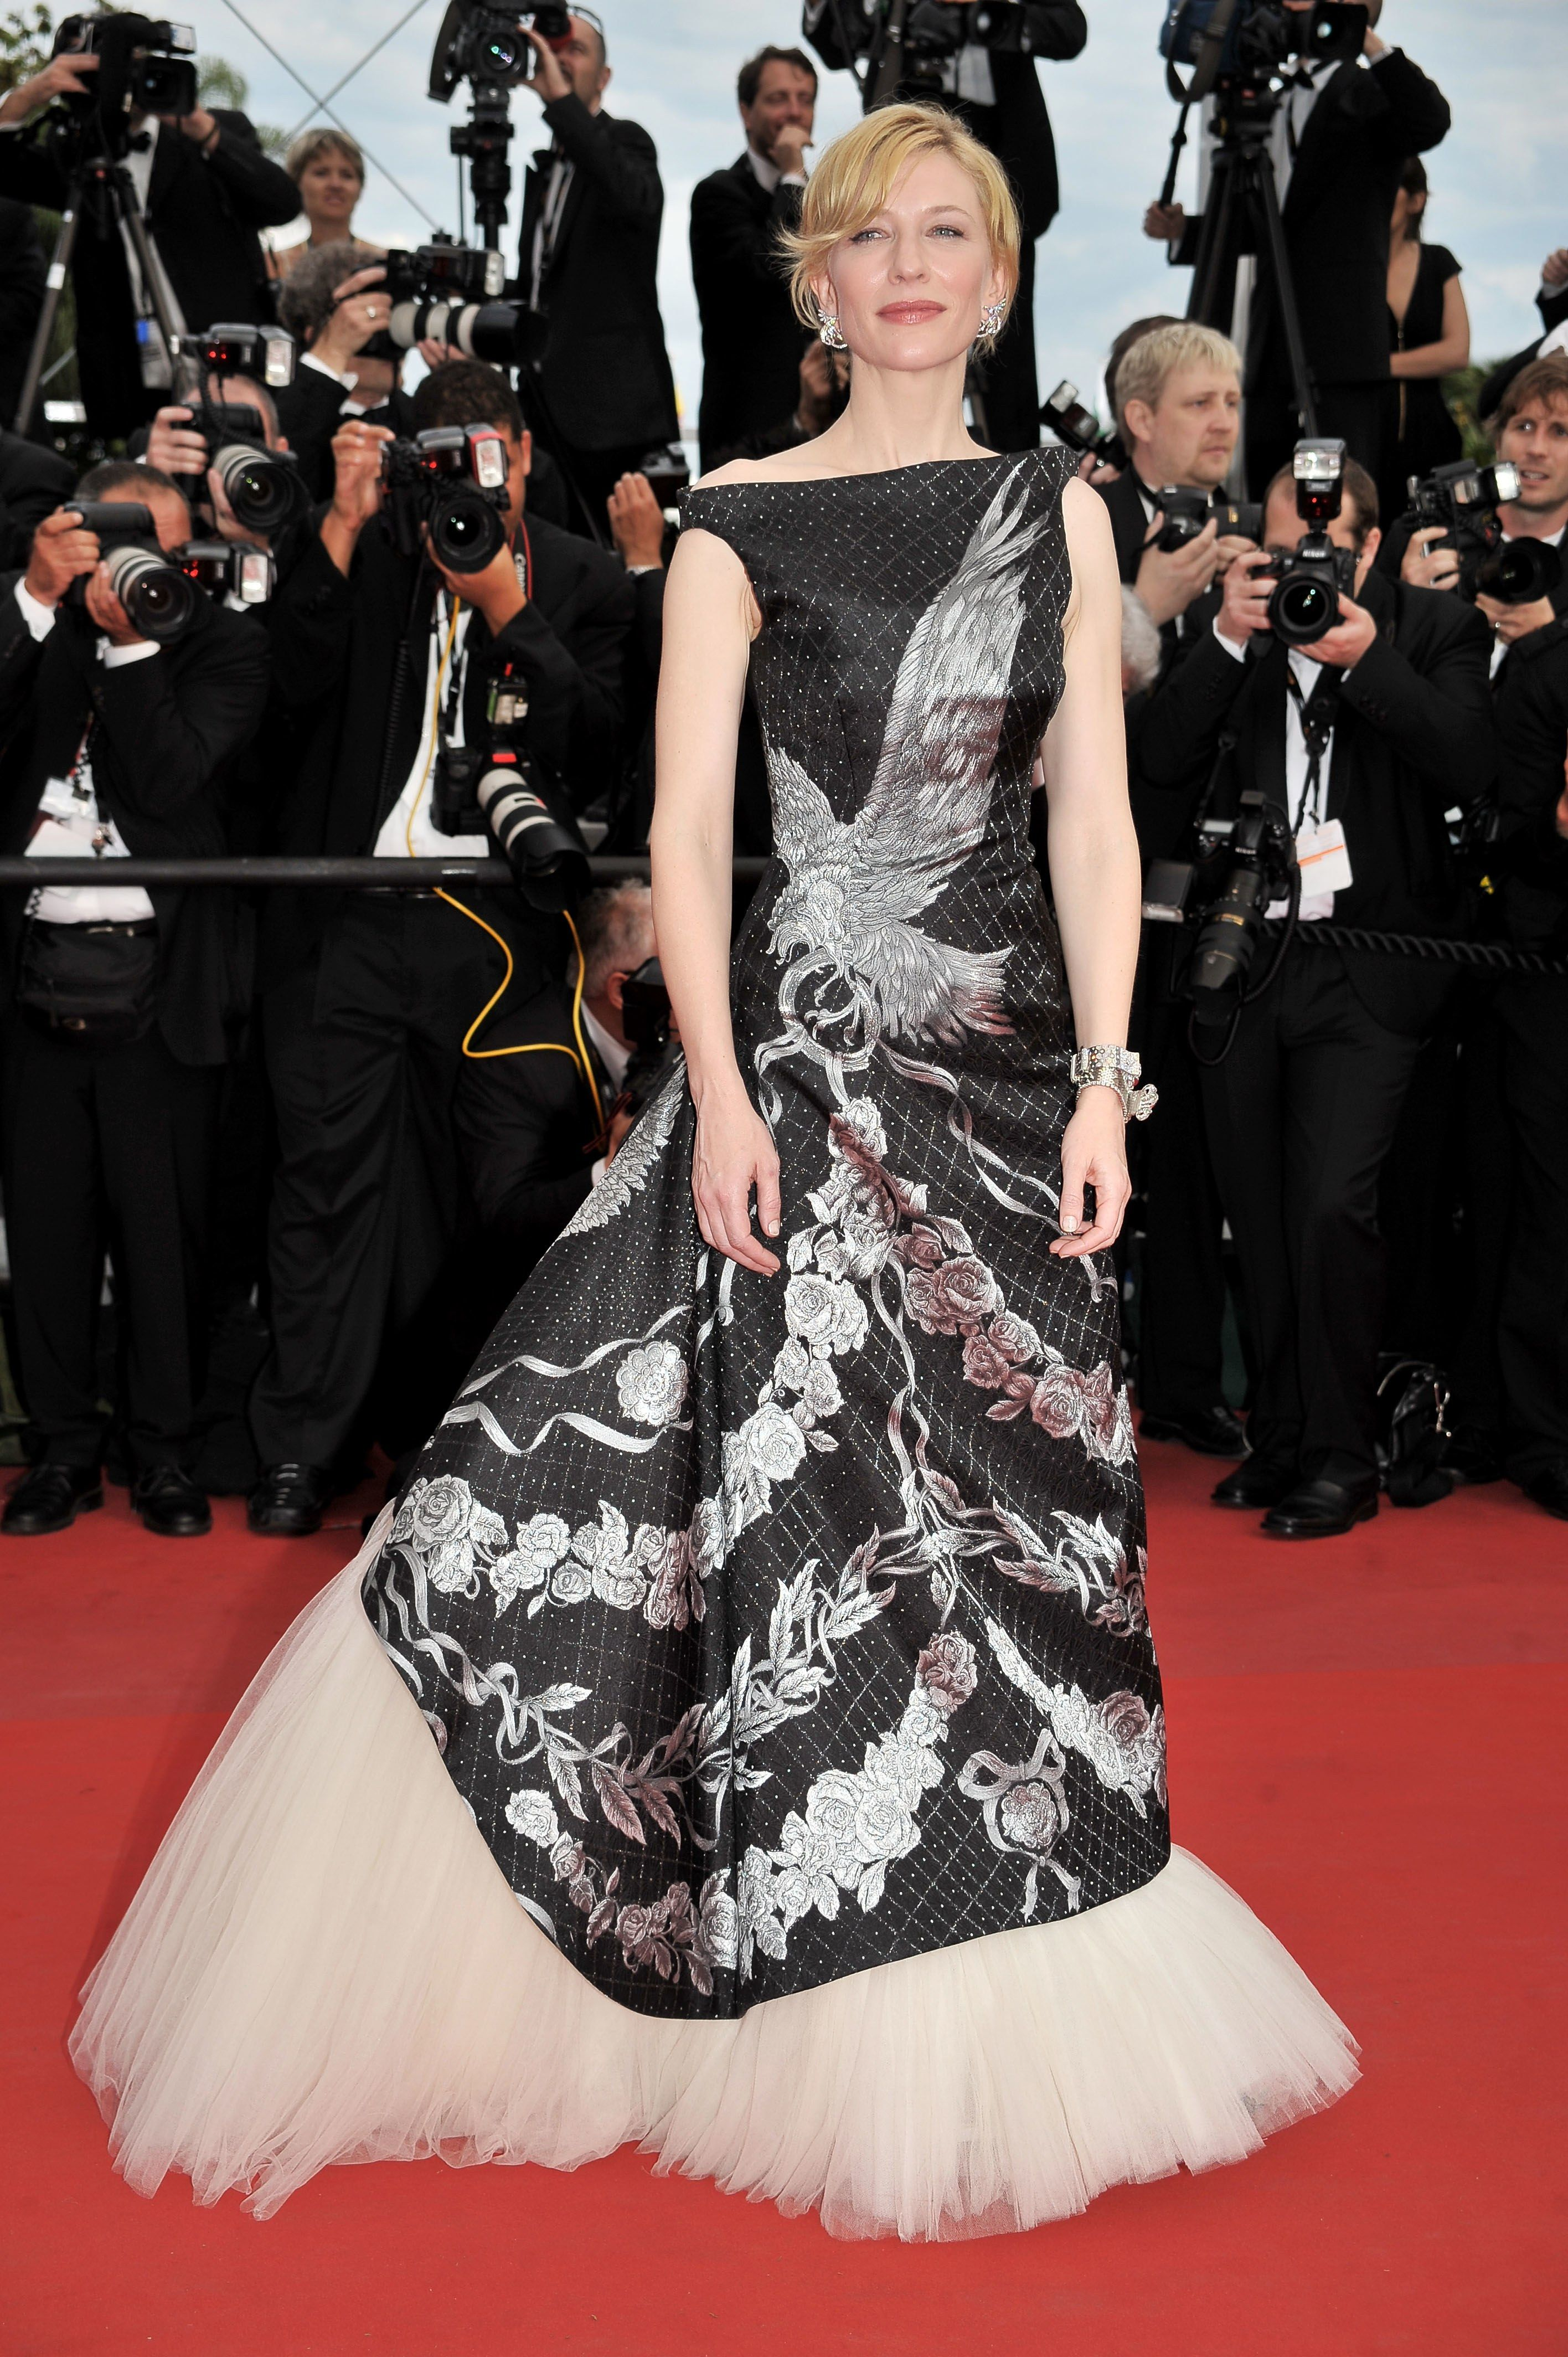 The Best Looks of the Cannes Film Festival Red Carpet A